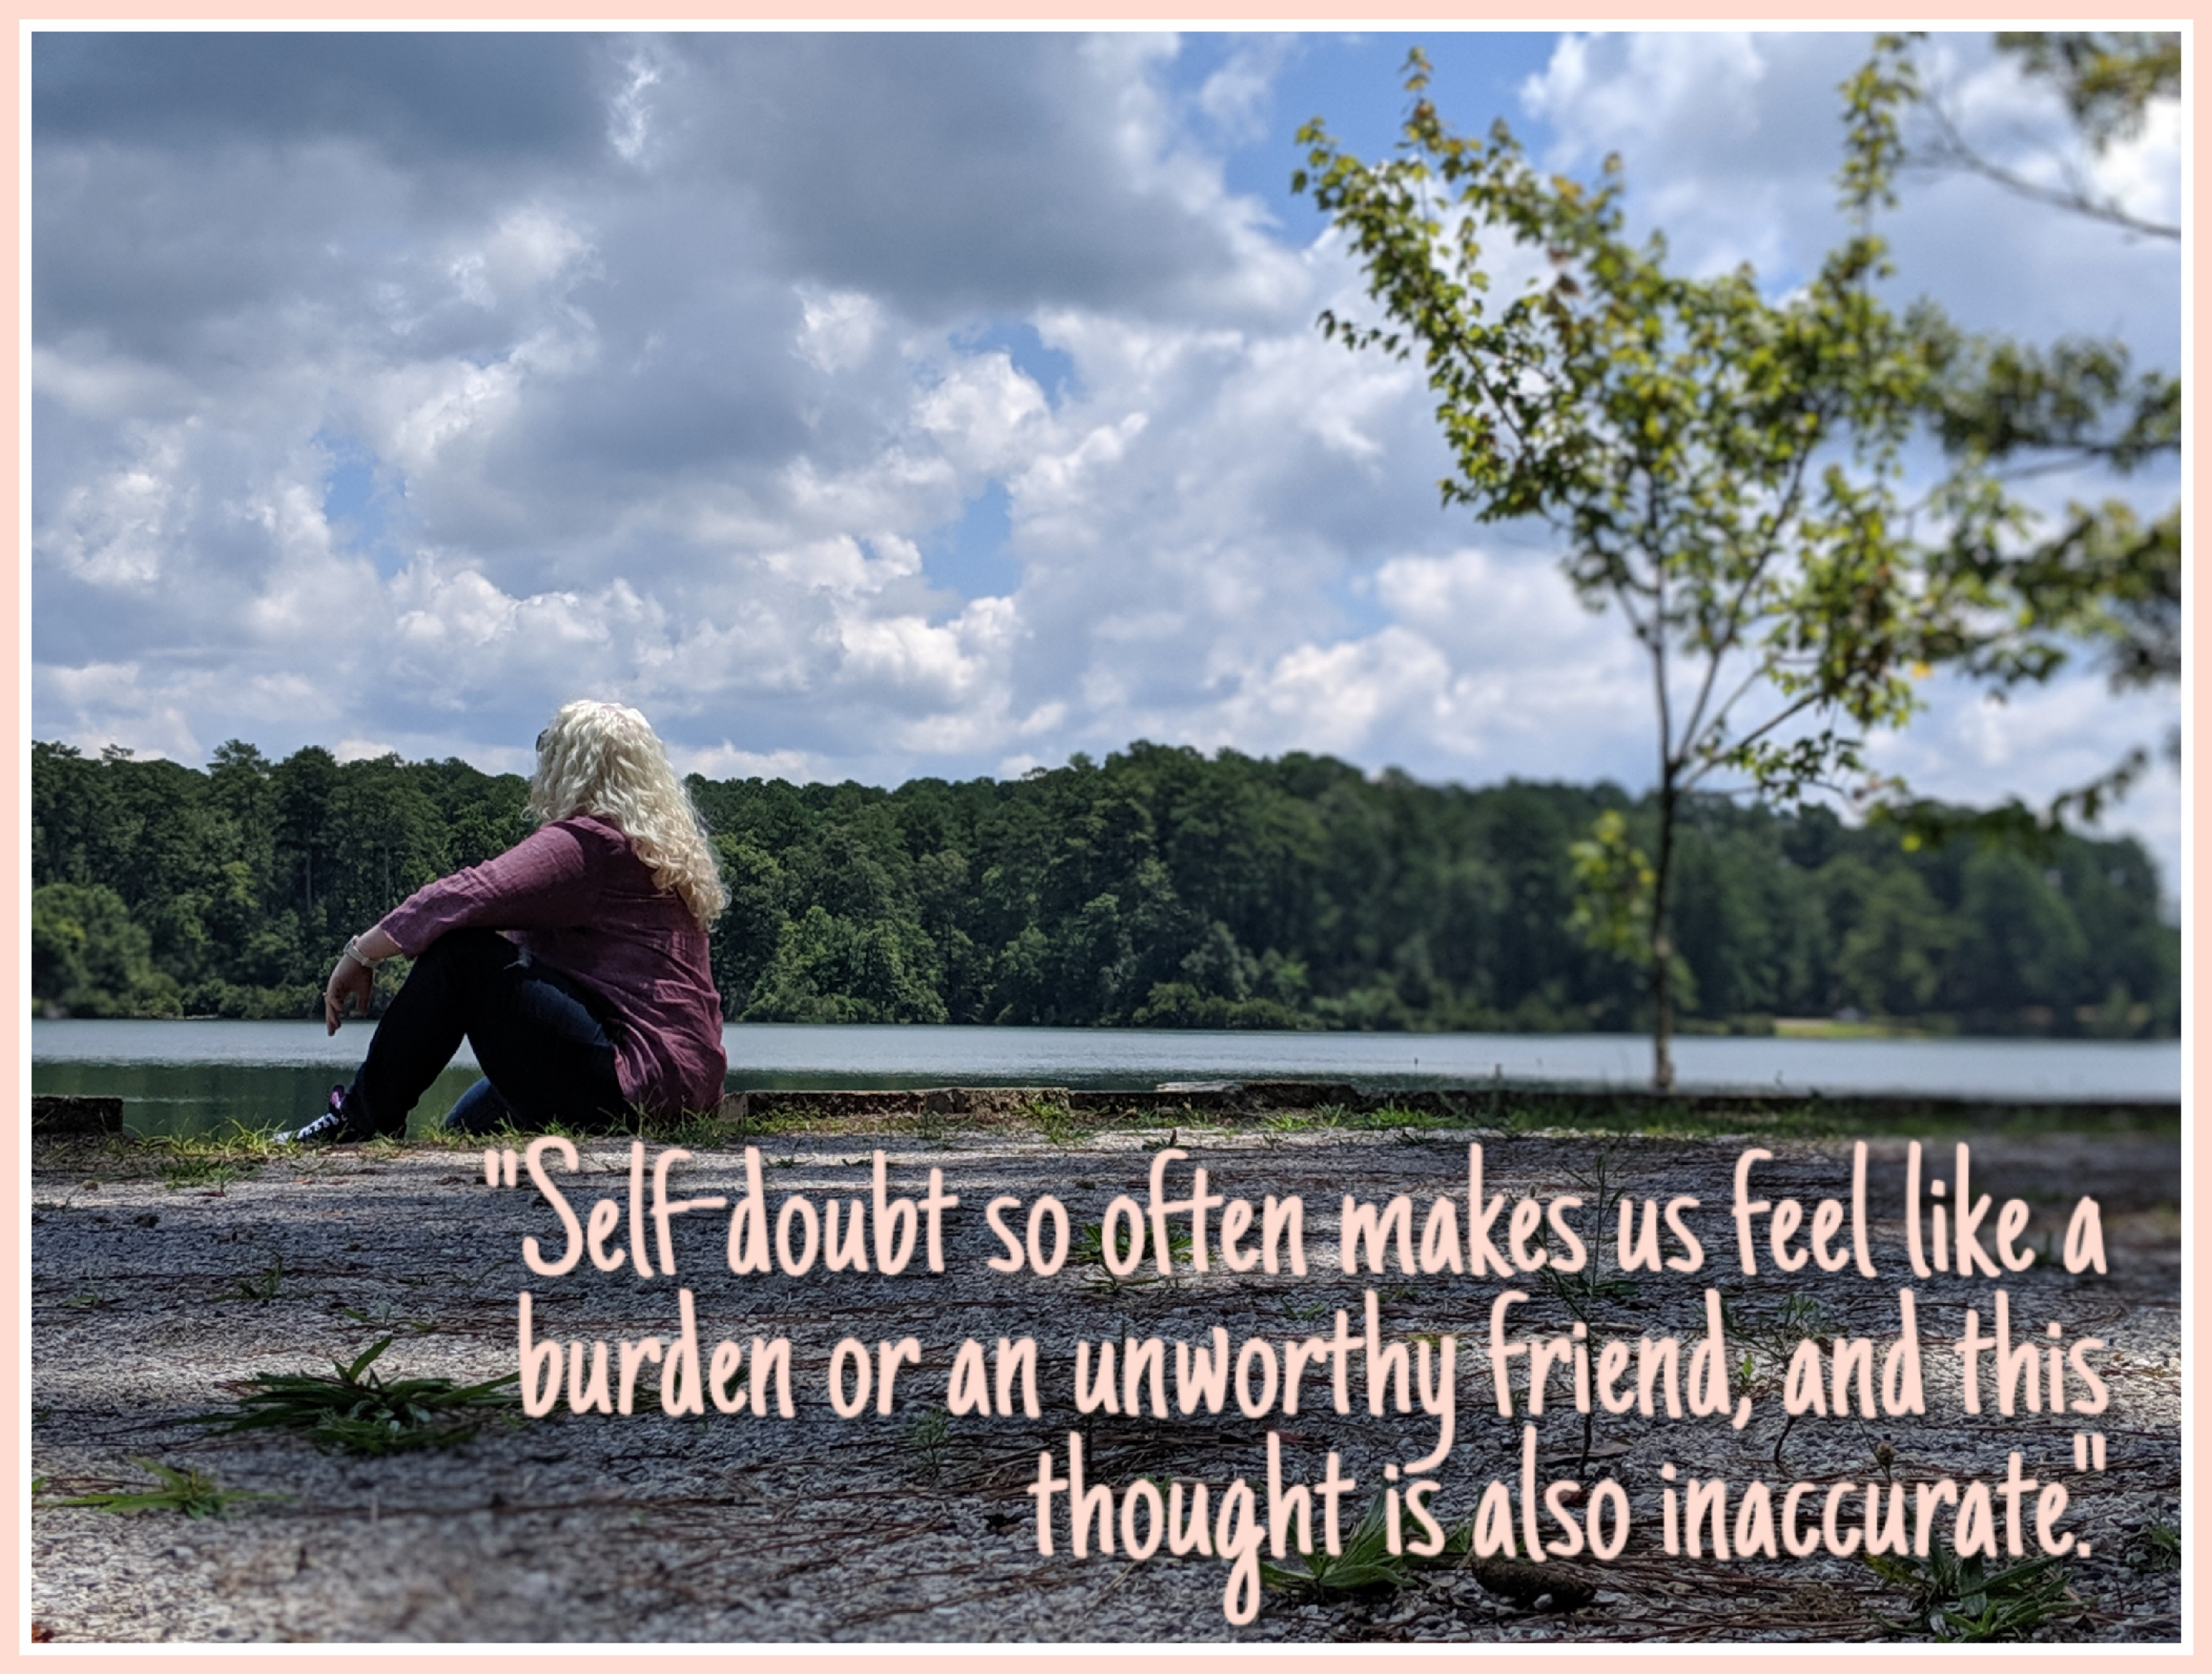 """Photo of me looking off out of frame with quoted text: """"Self-doubt so often makes us feel like a burden or an unworthy friend, and this thought is also inaccurate."""""""